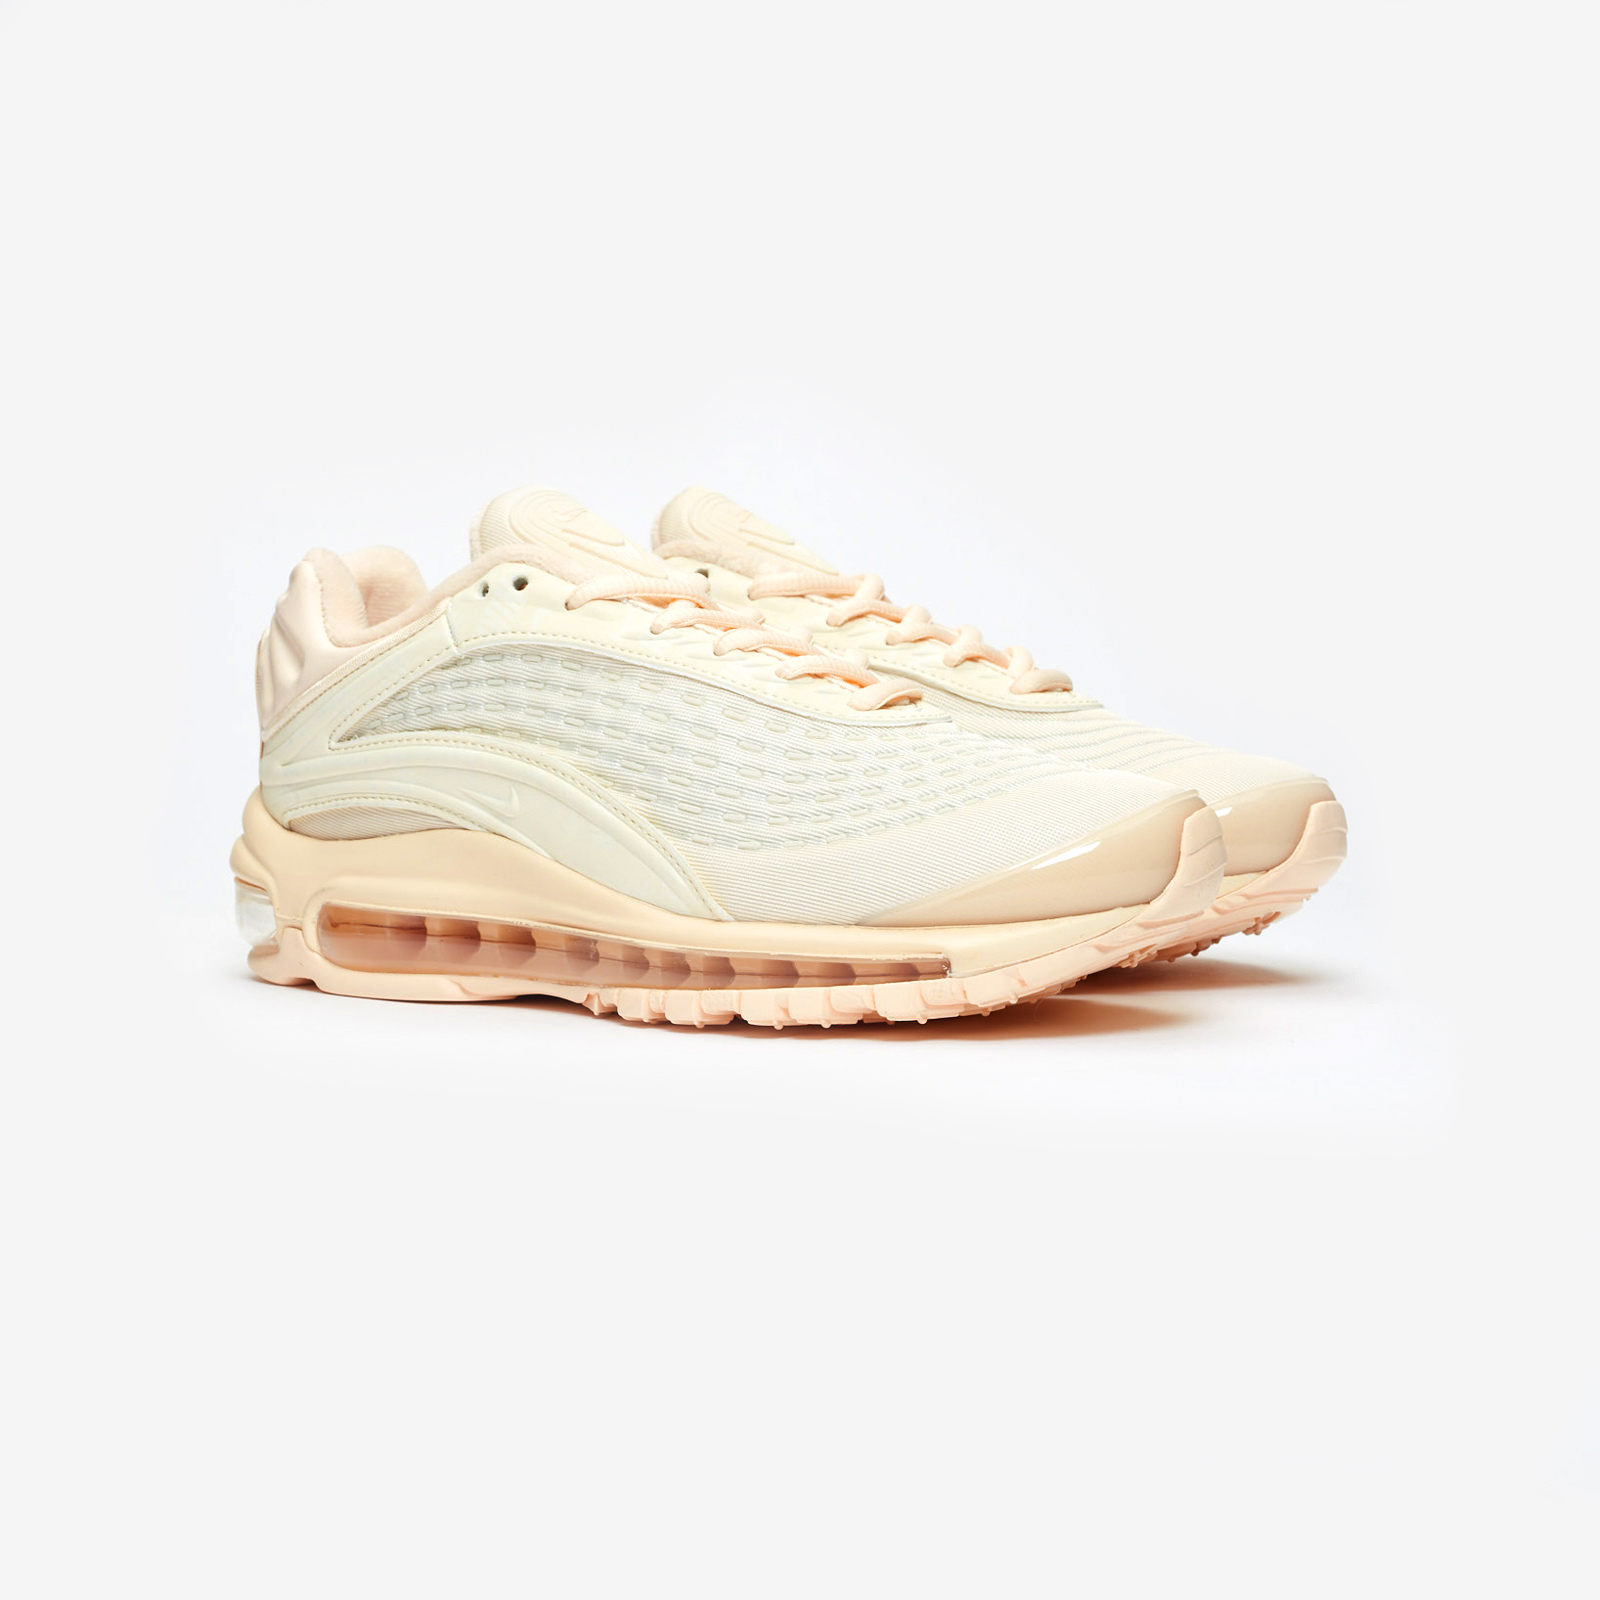 b97ac865e4 Nike Wmns Air Max Deluxe SE - At8692-800 - Sneakersnstuff   sneakers ...